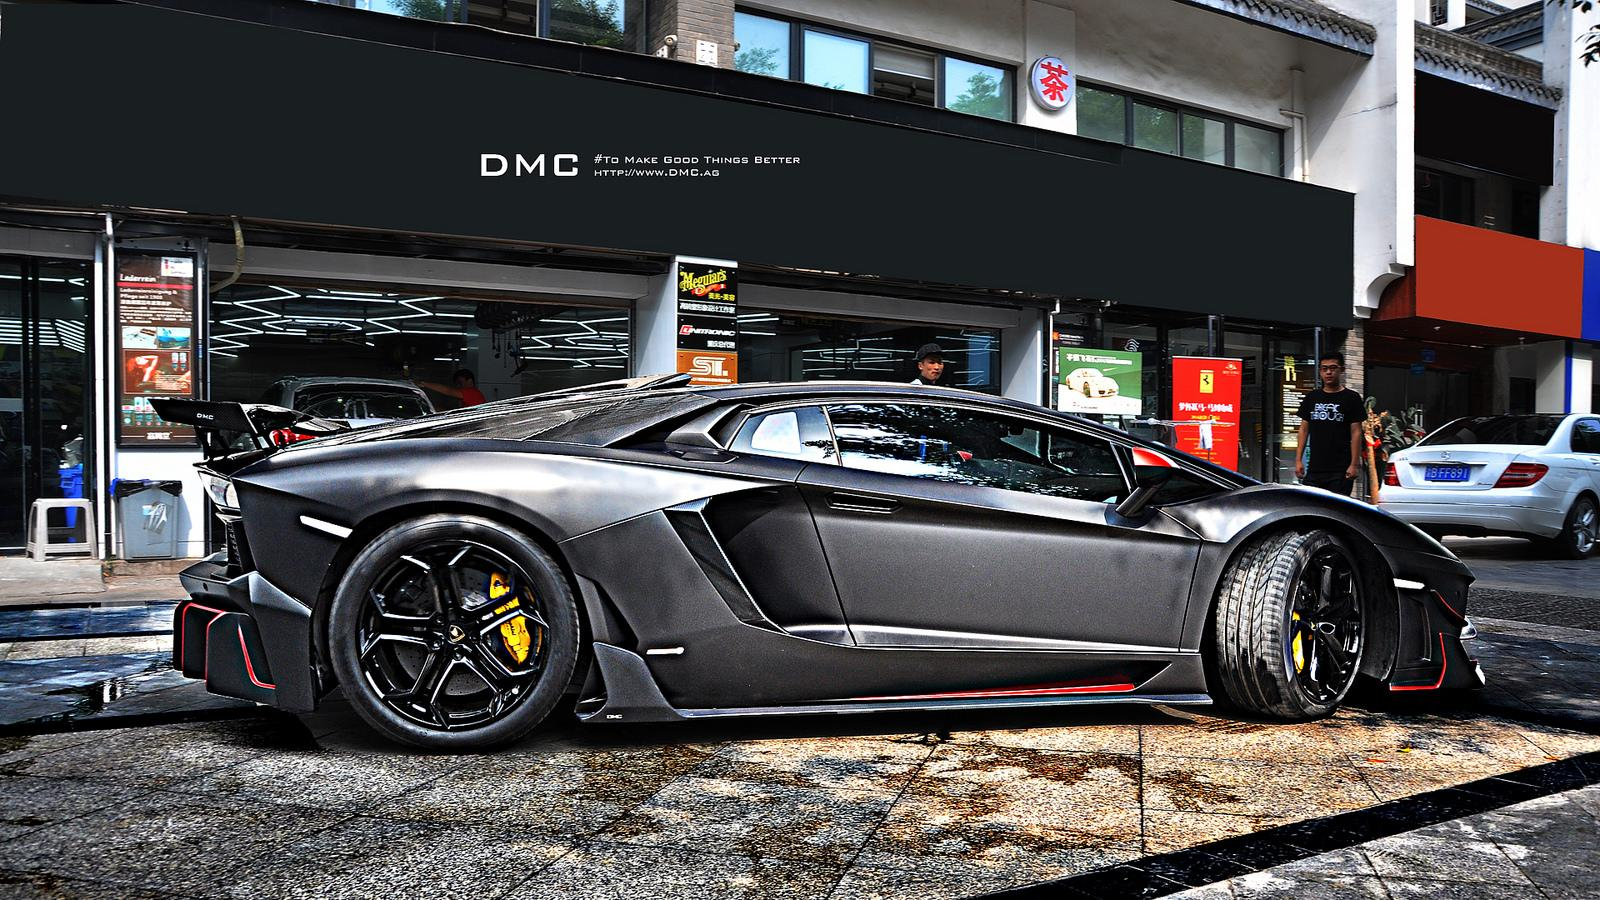 Dmc Edizione Gt Is A Lamborghini Aventador With A Fetish